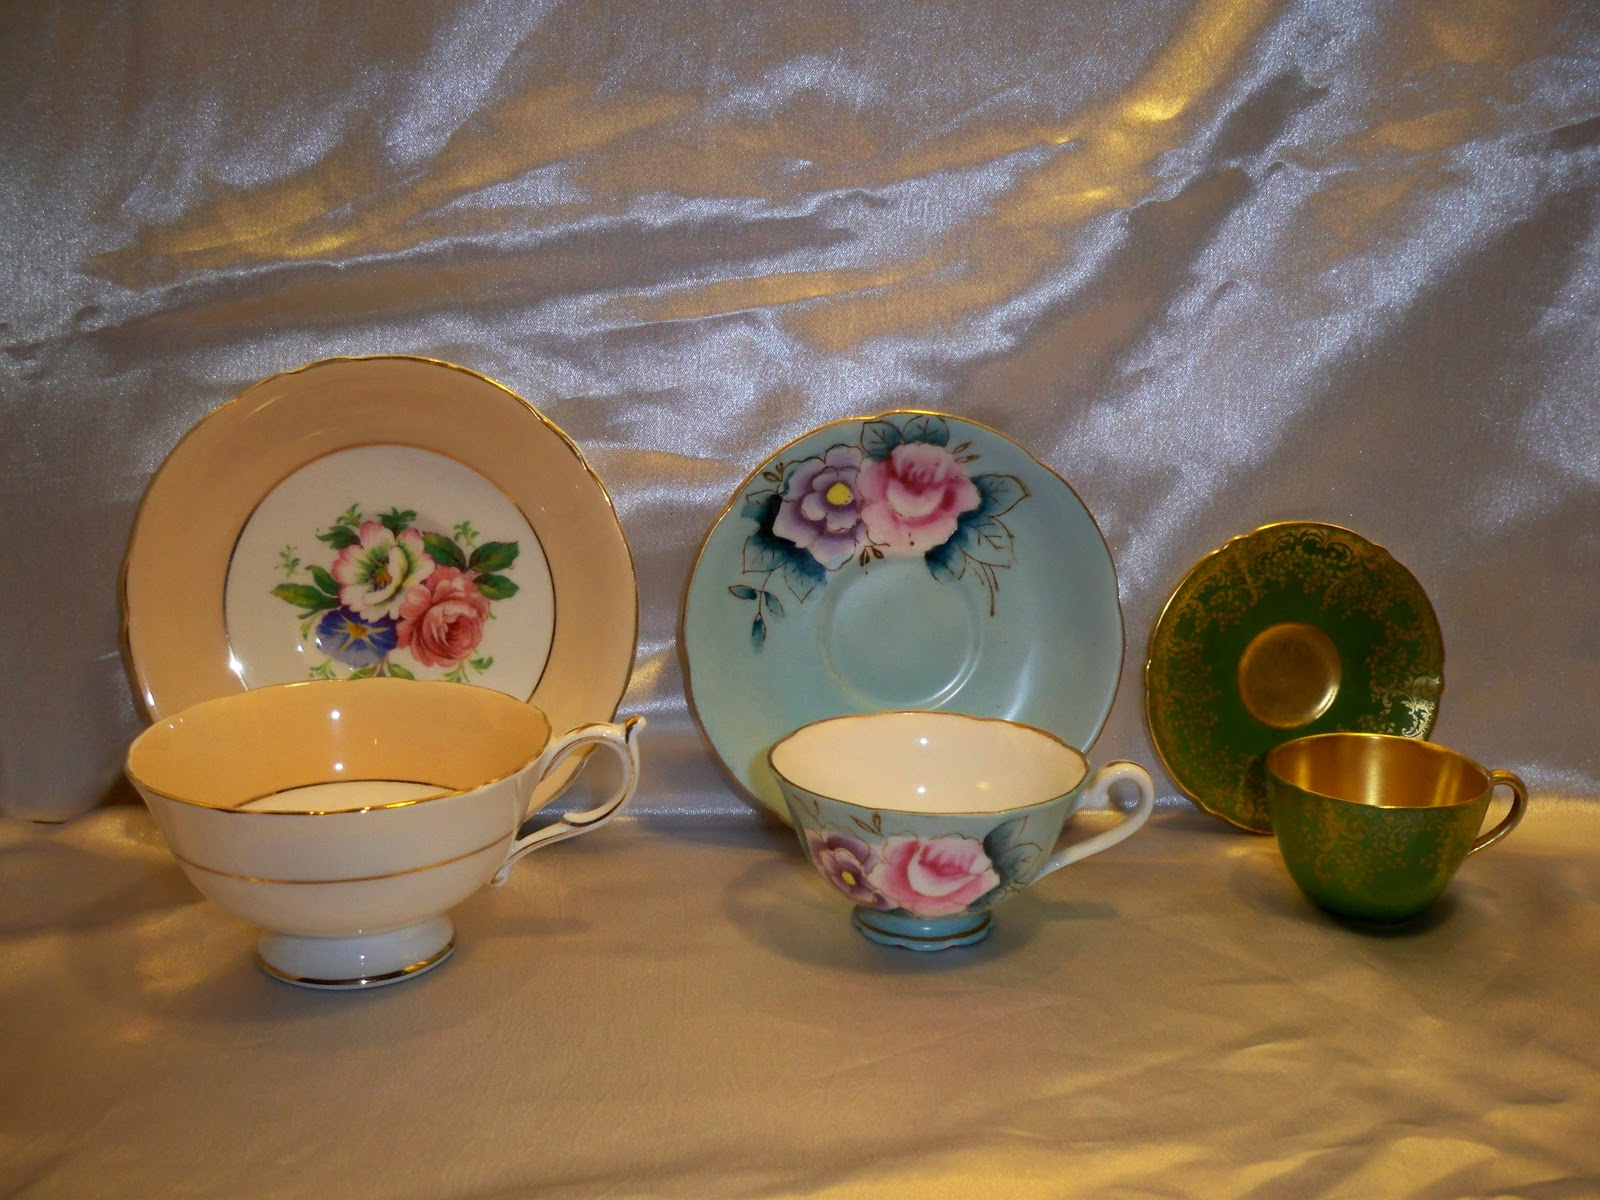 Left Tea Cup Saucer Middle Demite Right Mini Also Known As Doll Size Not Shown Coffee